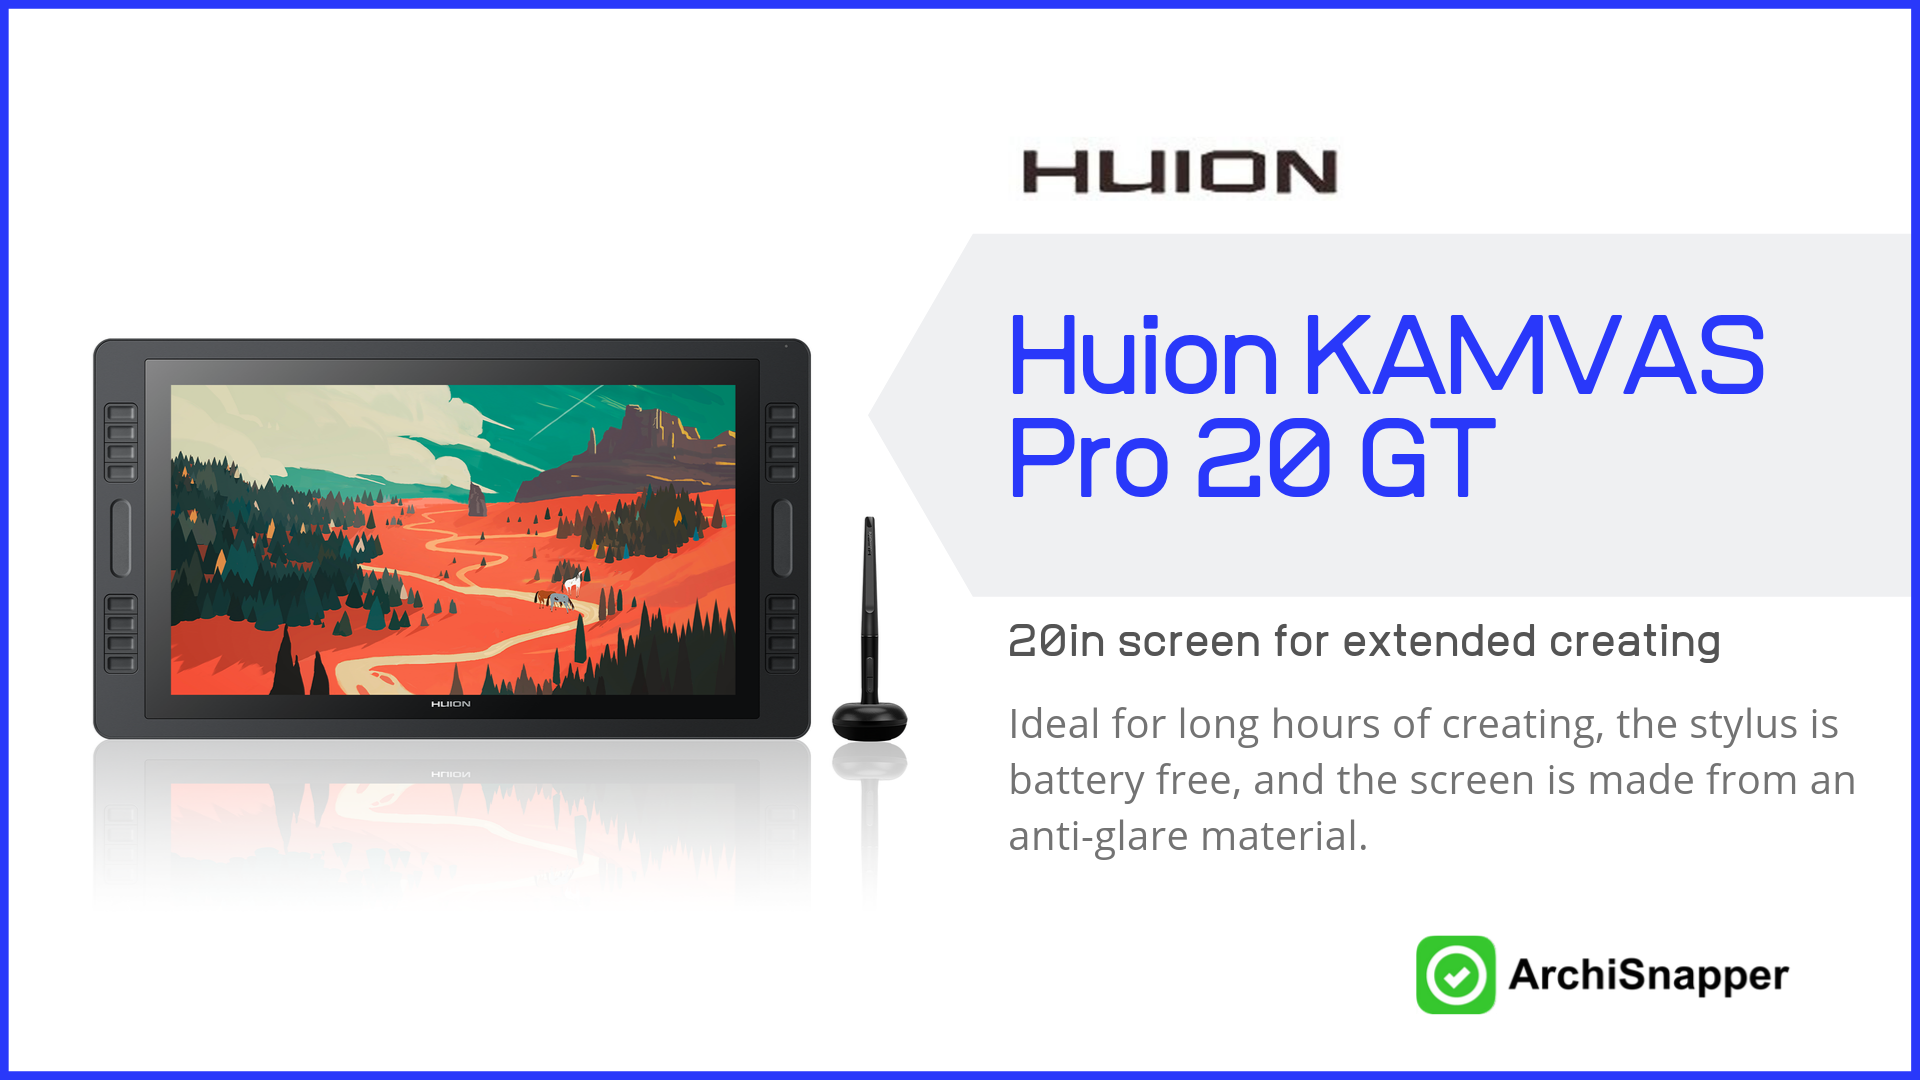 Huion KAMVAS Pro 20 GT | List of the 14 must-have tech tools and accessories ideal for architects